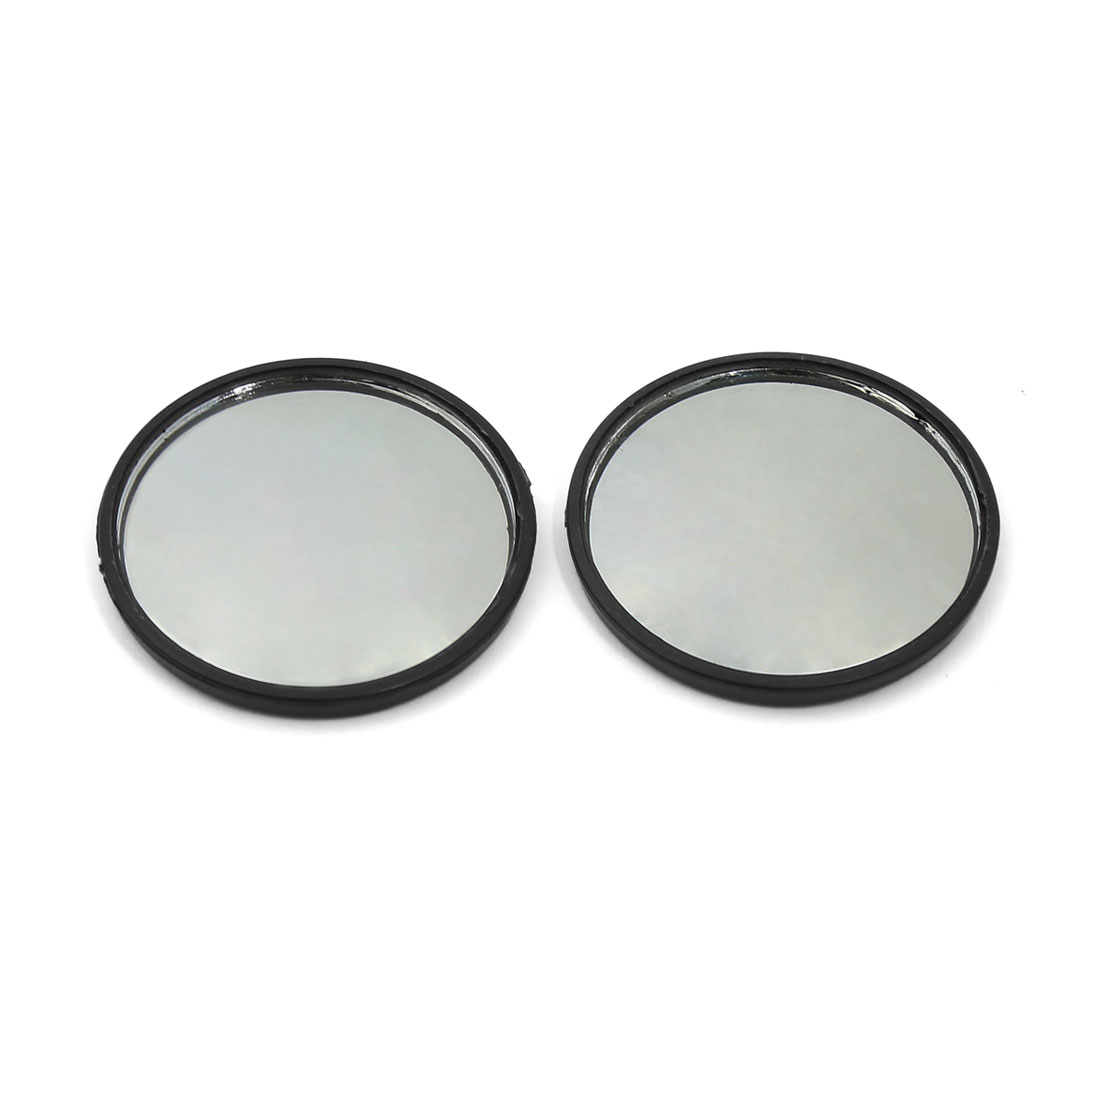 Universal 47mm Dia Black Stick-on Wide Angle Convex Car Blind Spot Mirror Pair